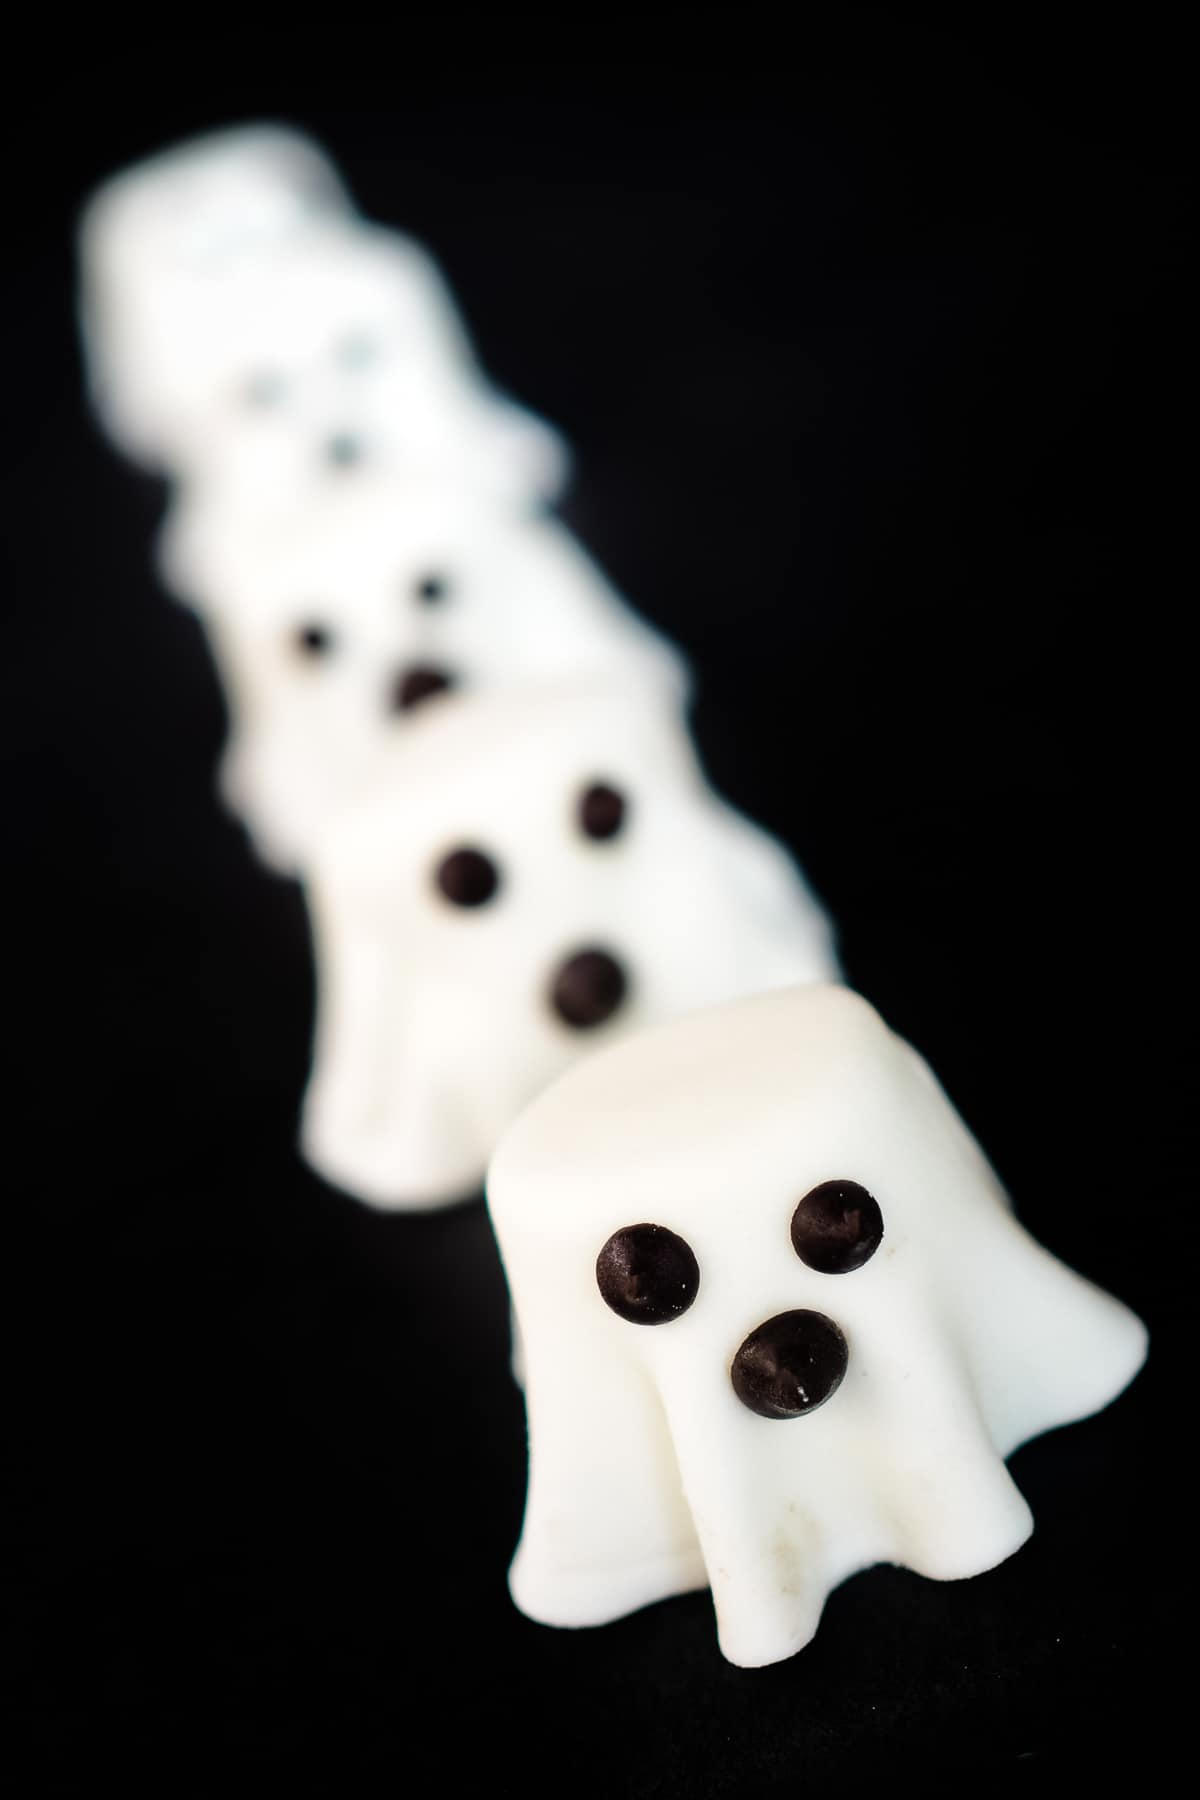 Marshmallow ghosts made of fondant and marshmallow and chocolate chips